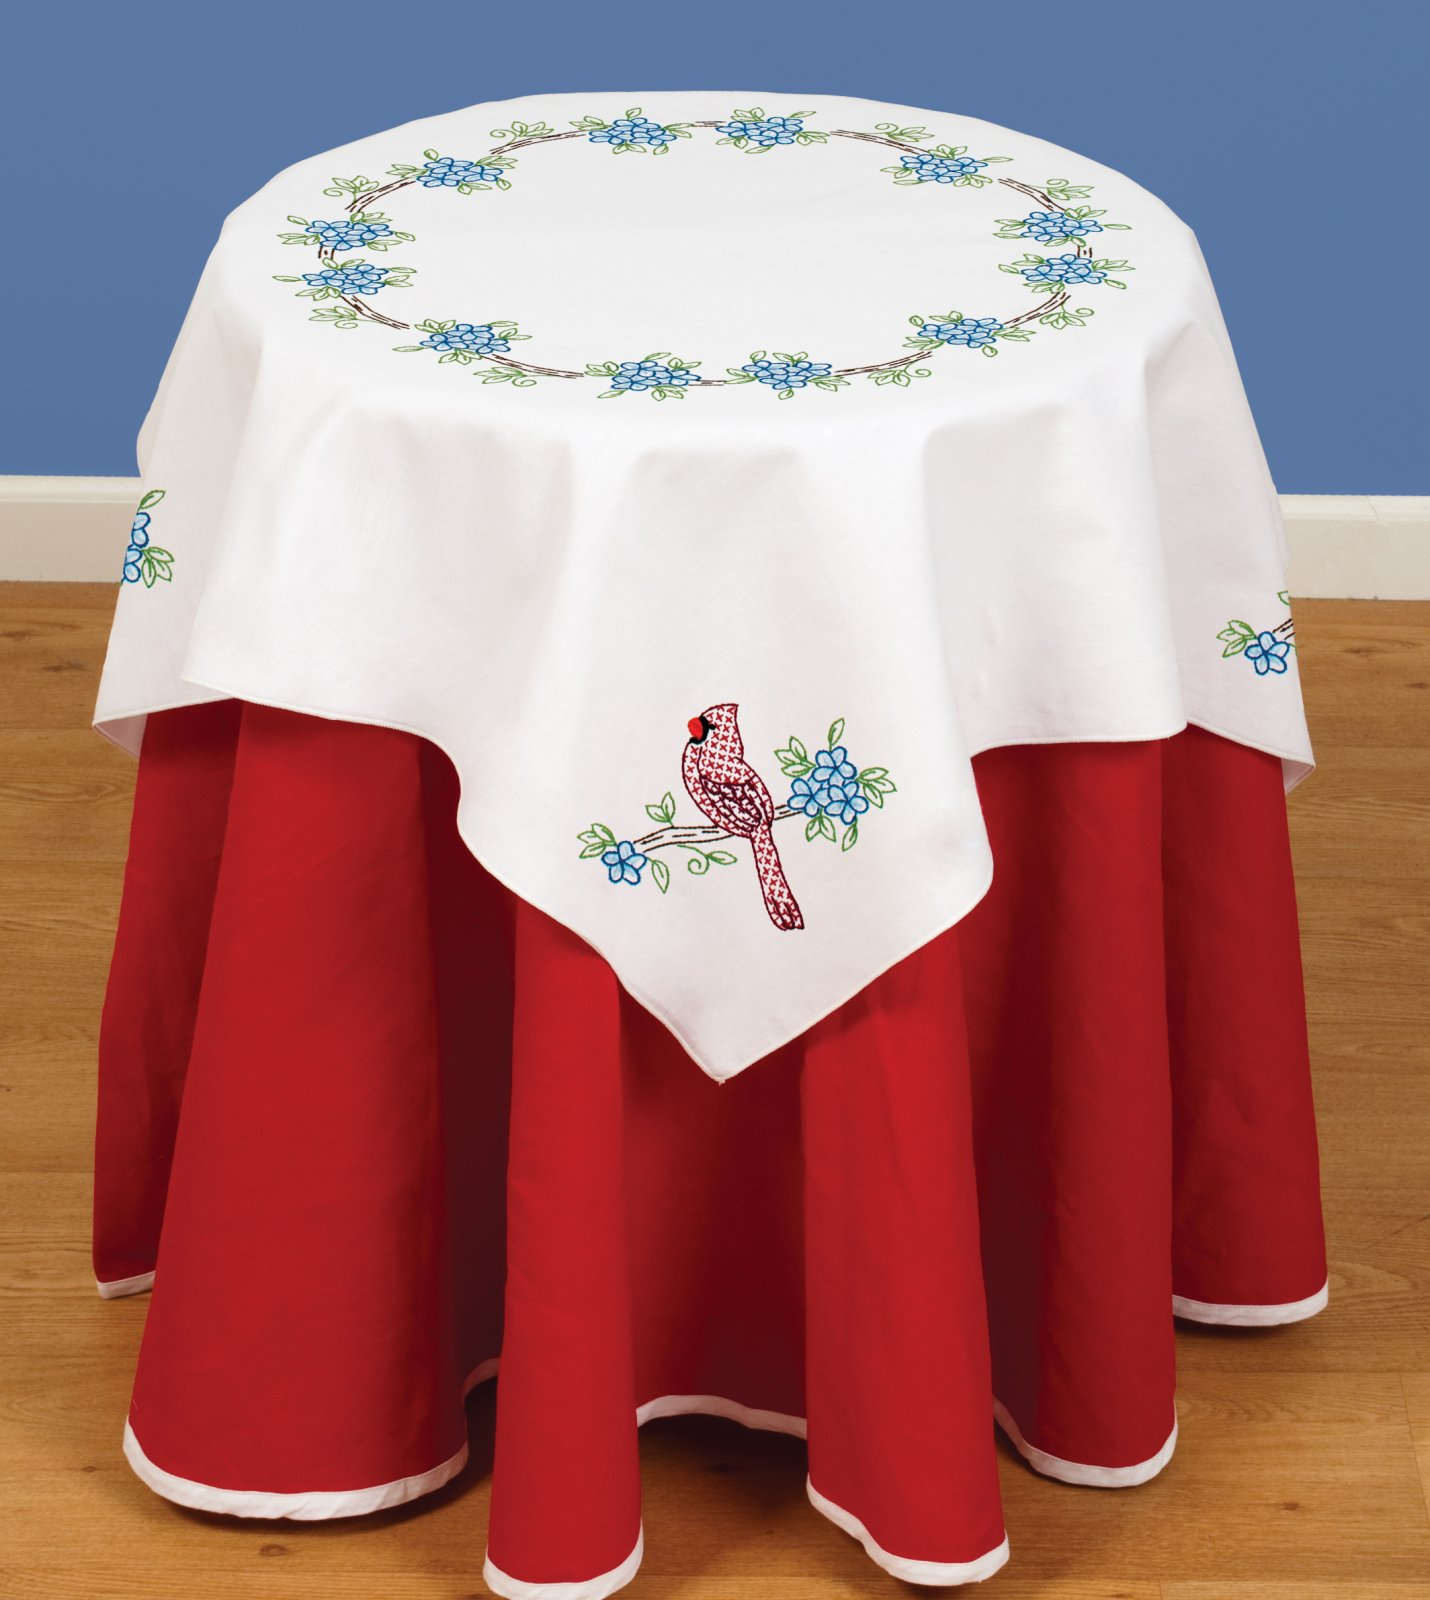 0550-TABLE TOPPER (35 x 35) - Group